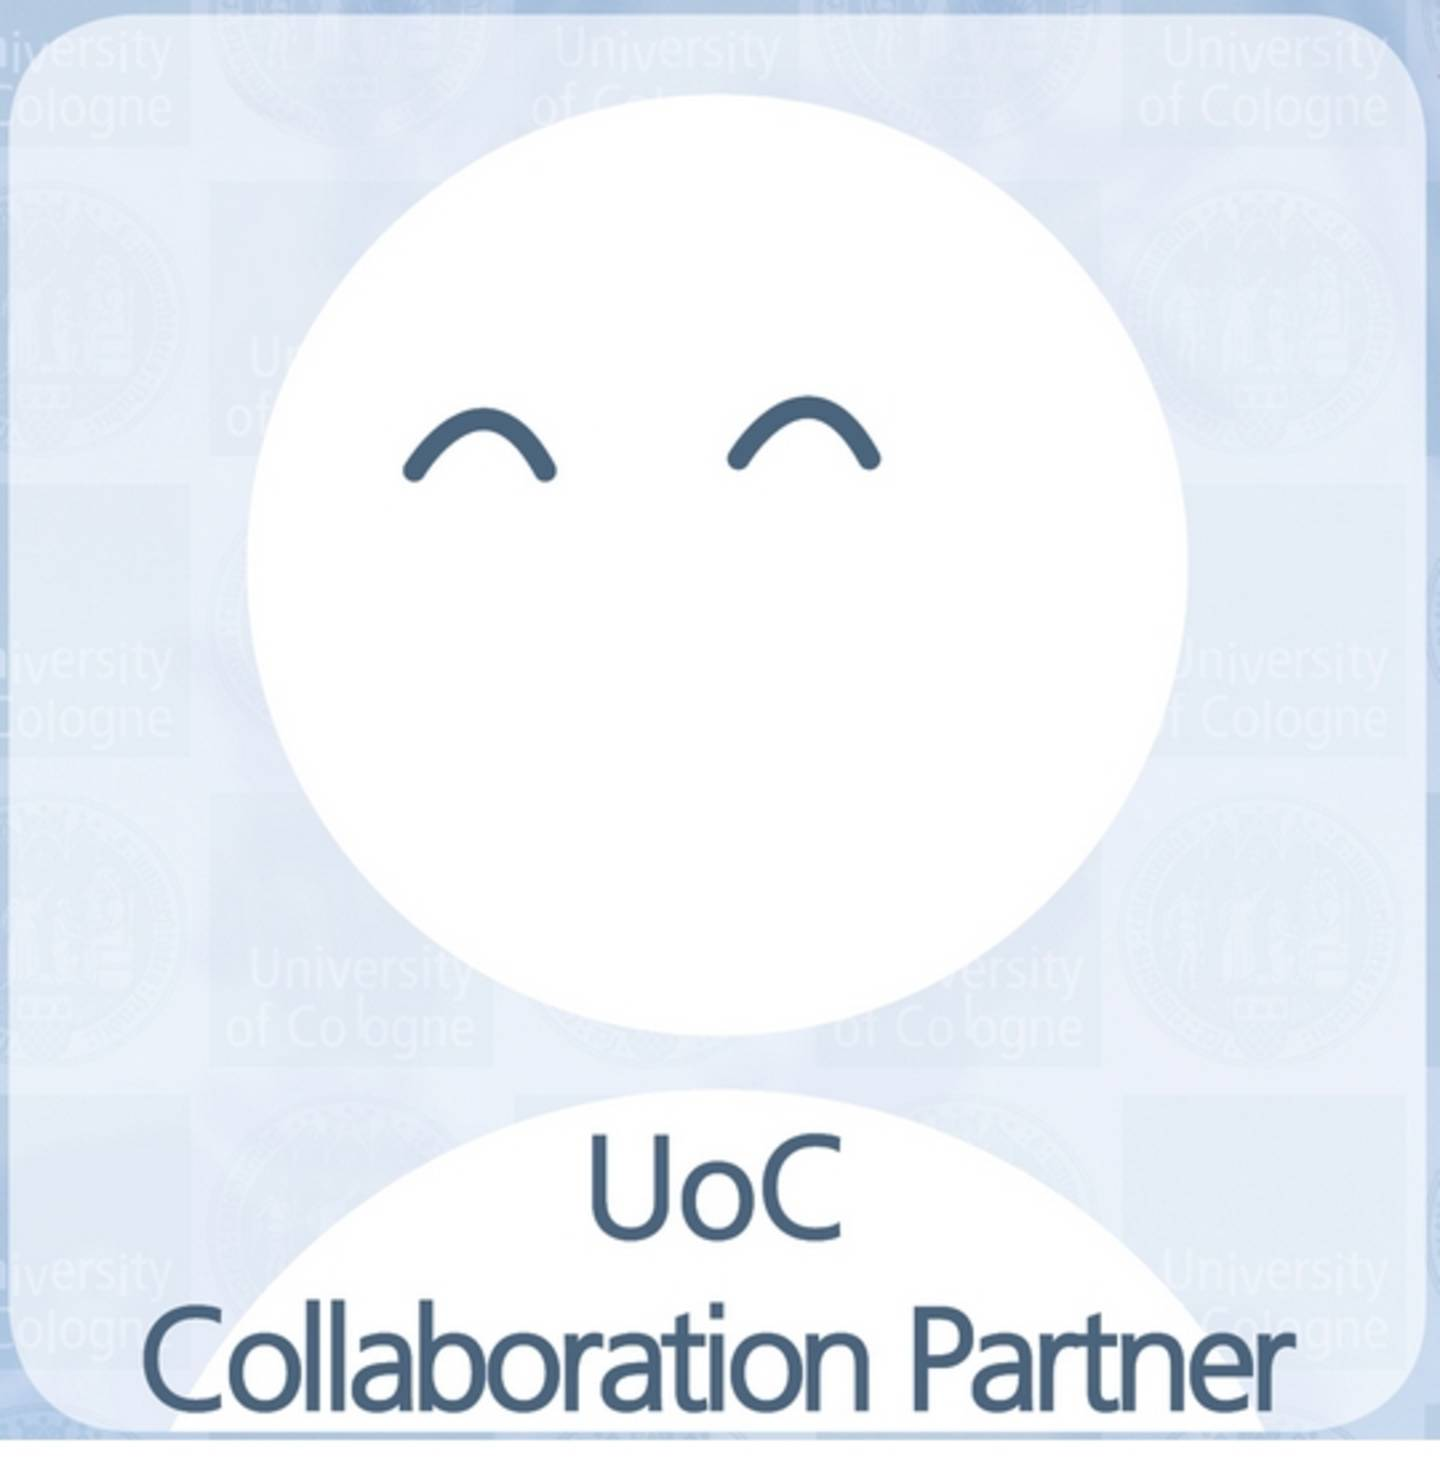 UoC Collaboration Partner